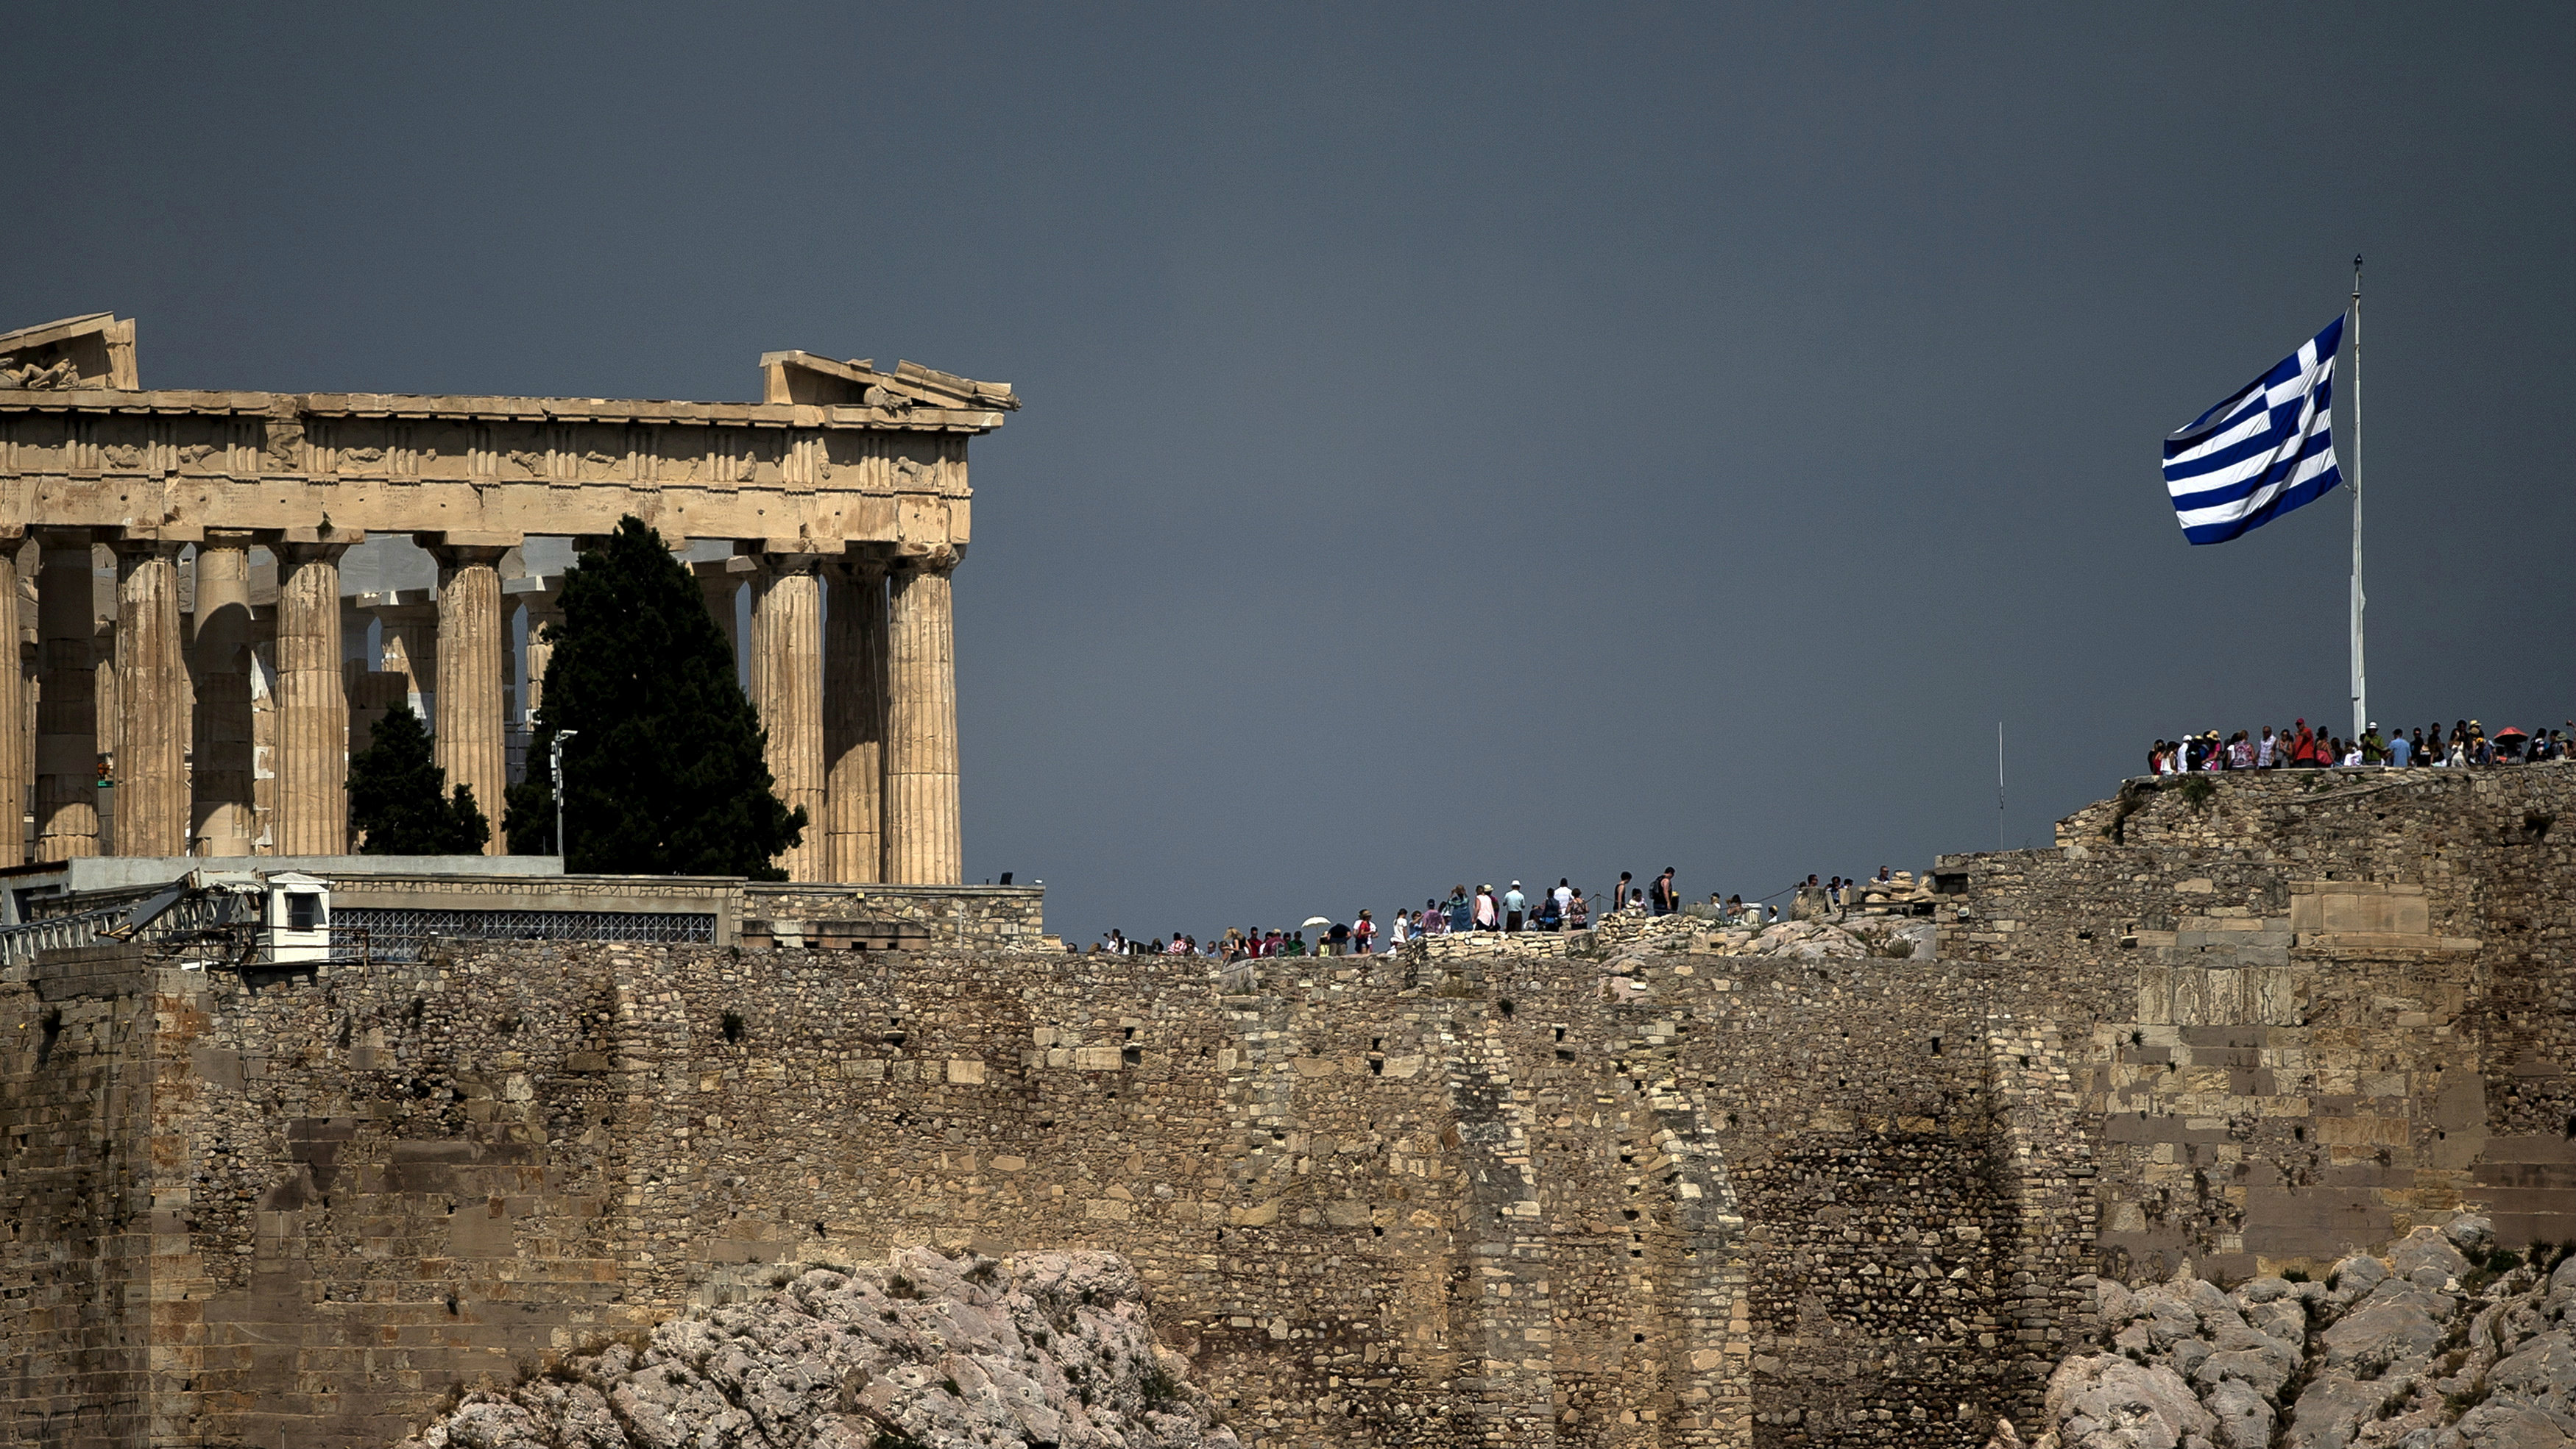 A Greek flag flutters in front of the ancient Parthenon temple atop the Acropolis hill